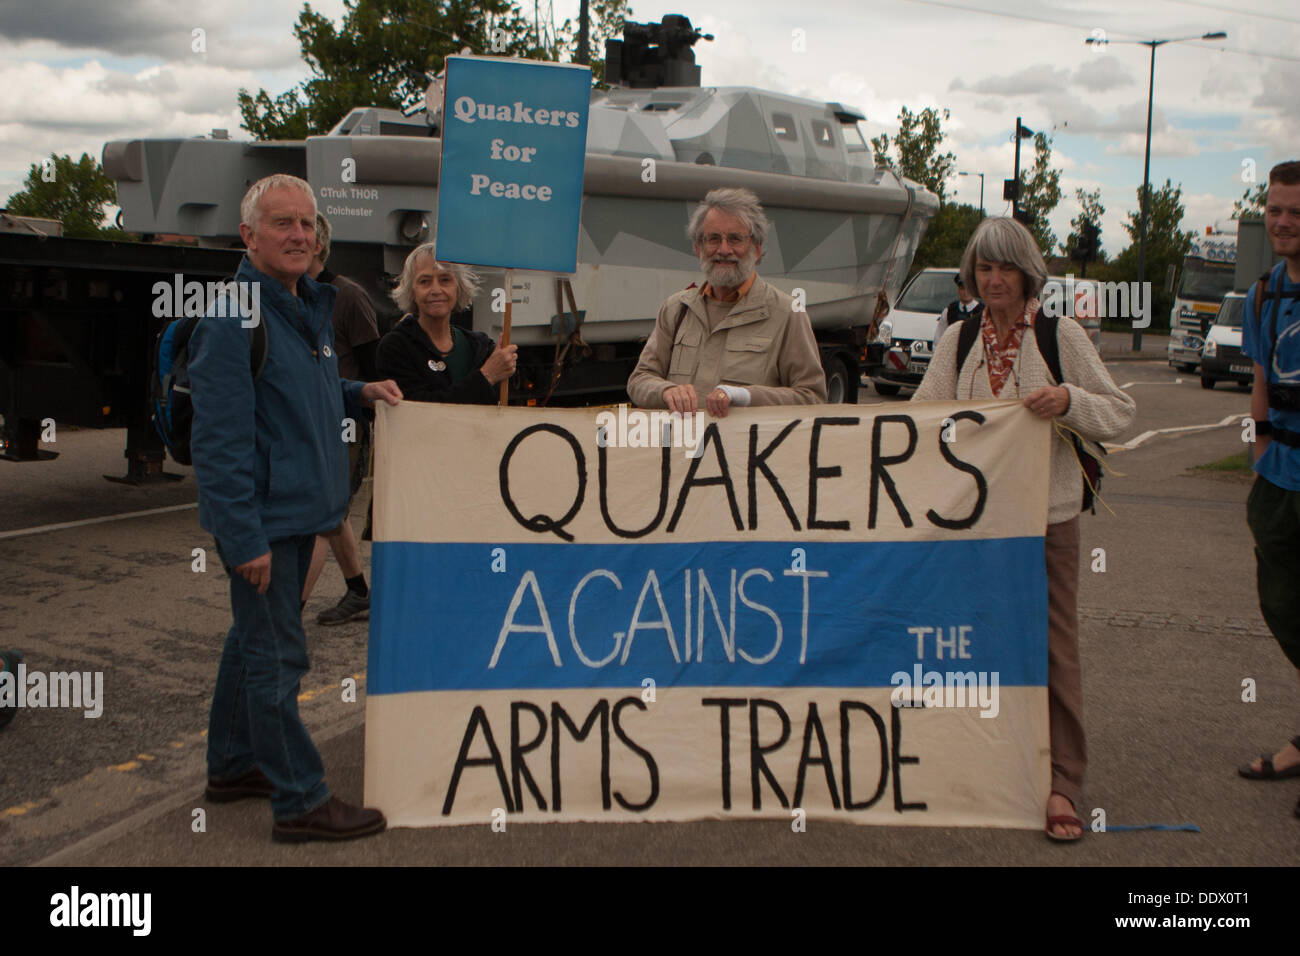 London, UK. 8th Sep, 2013. Quakers against the Arms Trade at protest against the Defence Security and Equipment Stock Photo